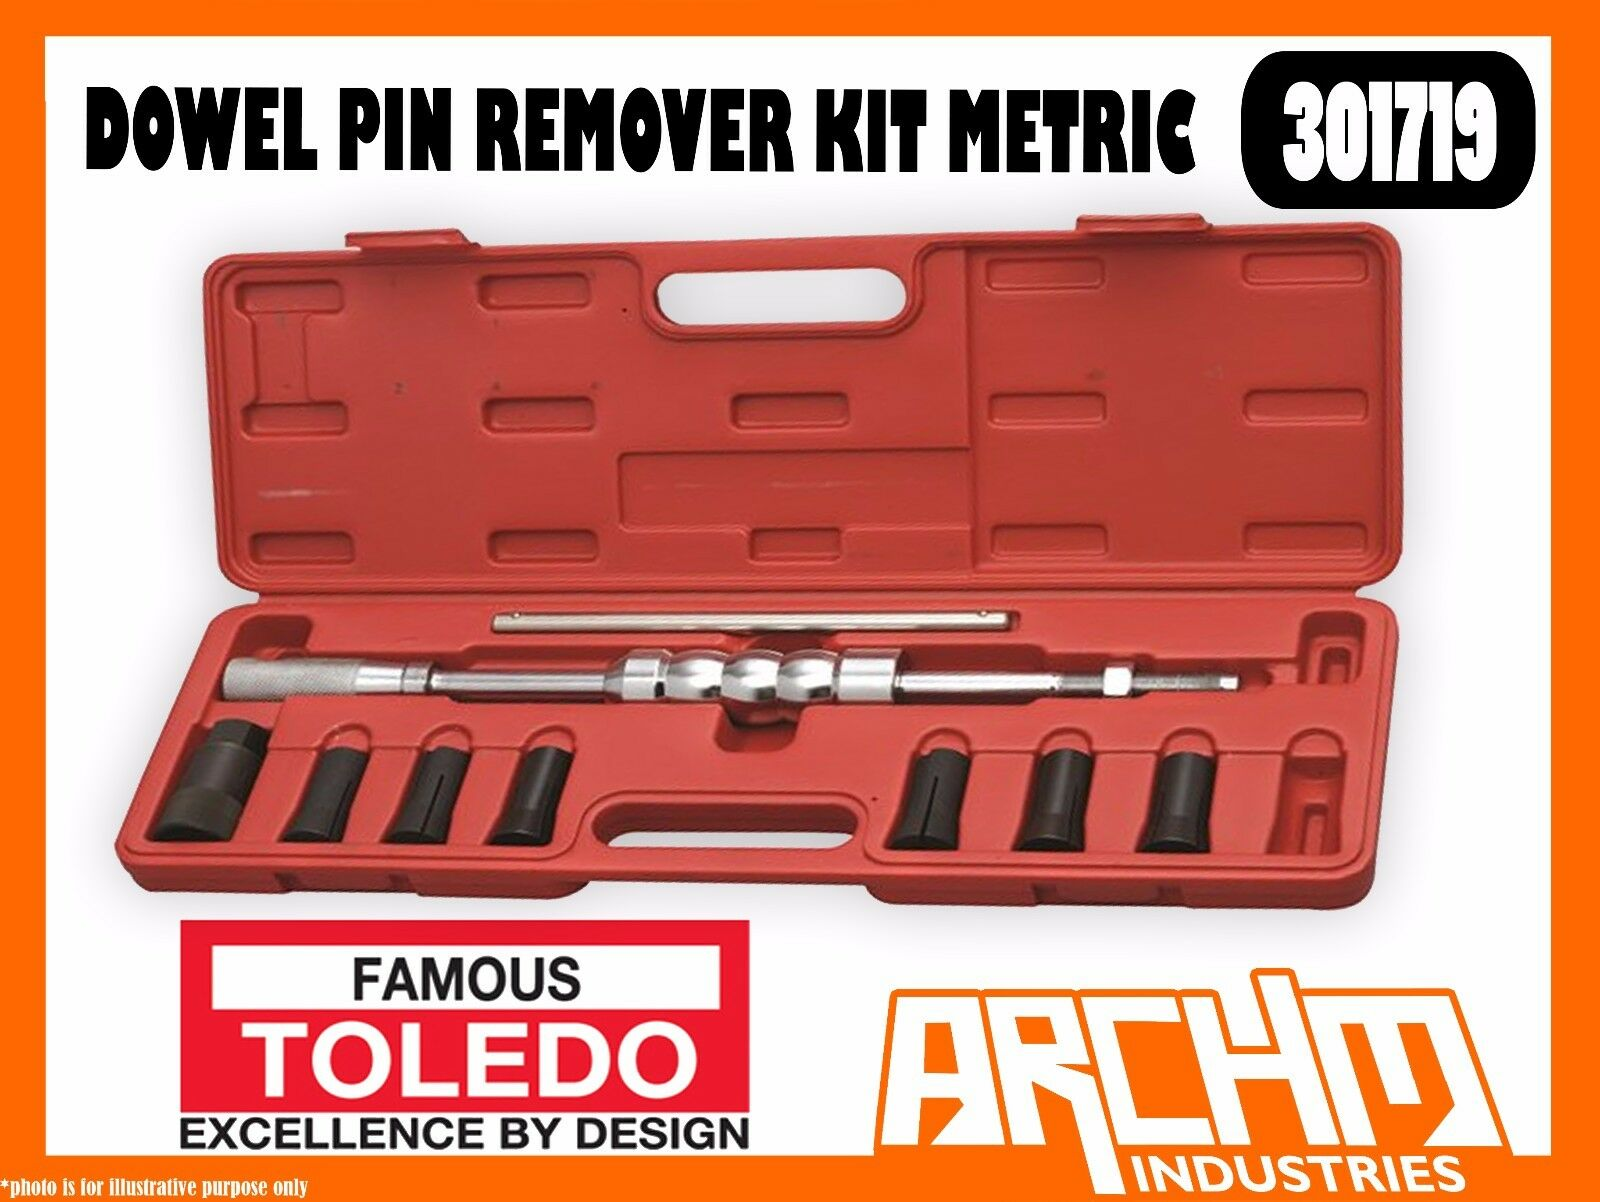 TOLEDO 301719 - DOWEL PIN REMOVER KIT METRIC - REMOVE WORN DAMAGED ALIGNMENT